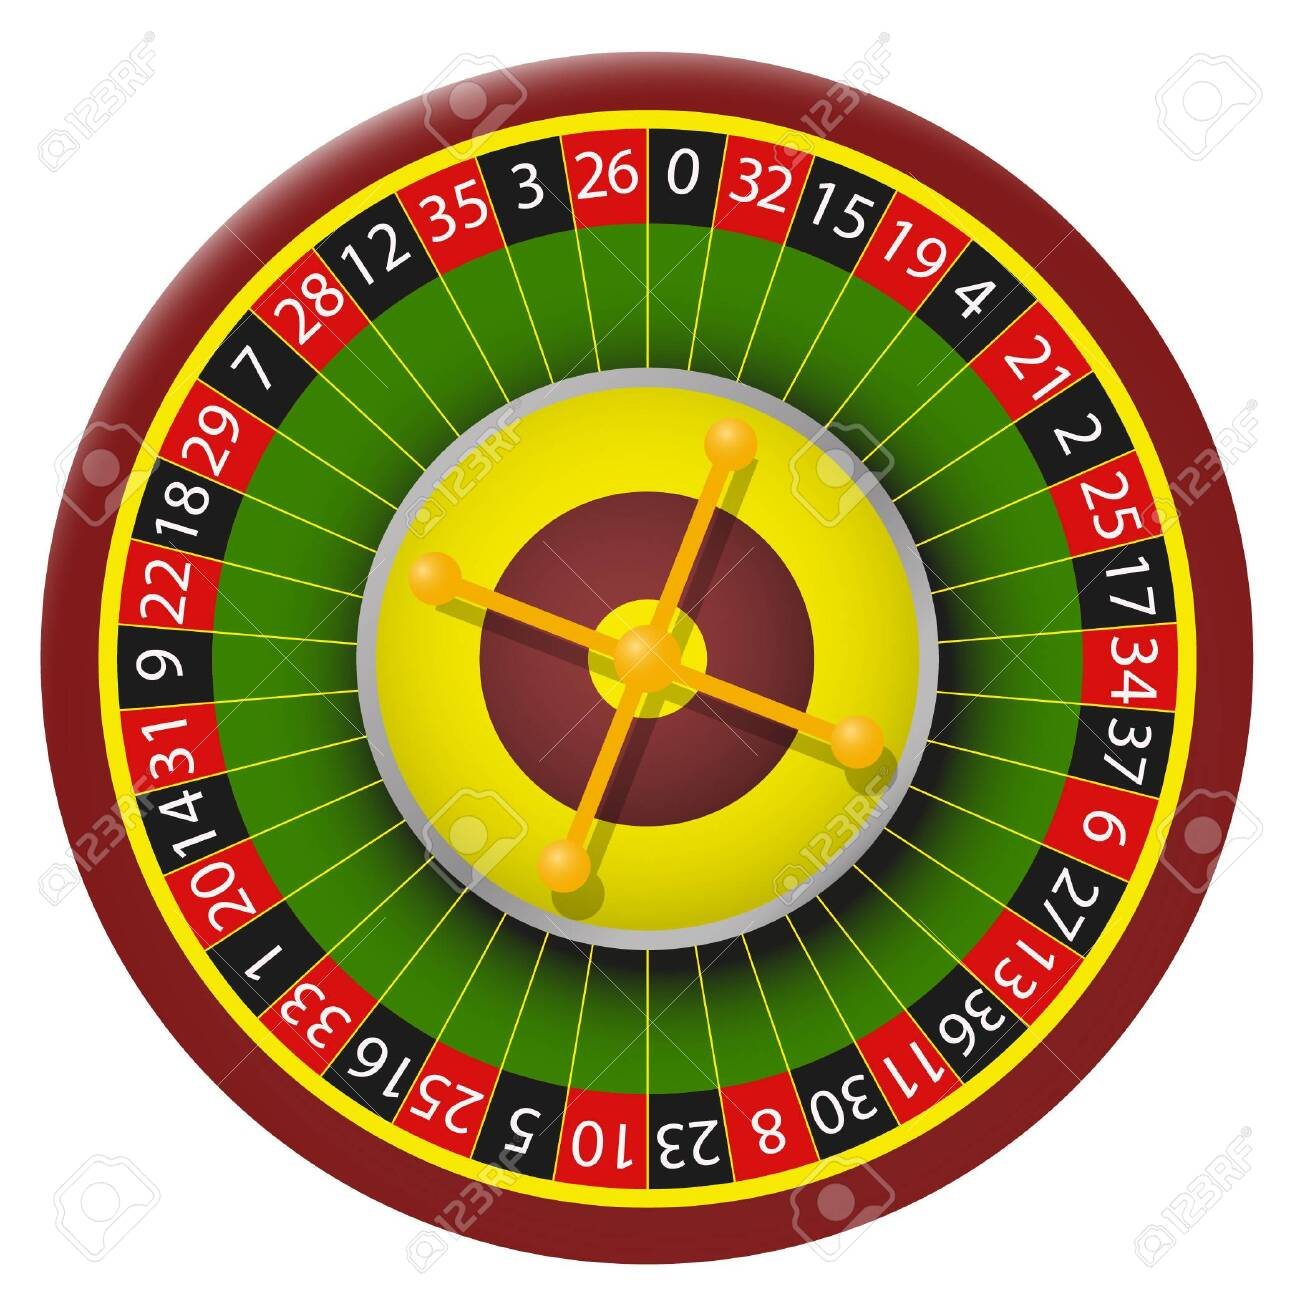 Vector color image roulette. Roulette casino vector isolated image on white background - 151113036